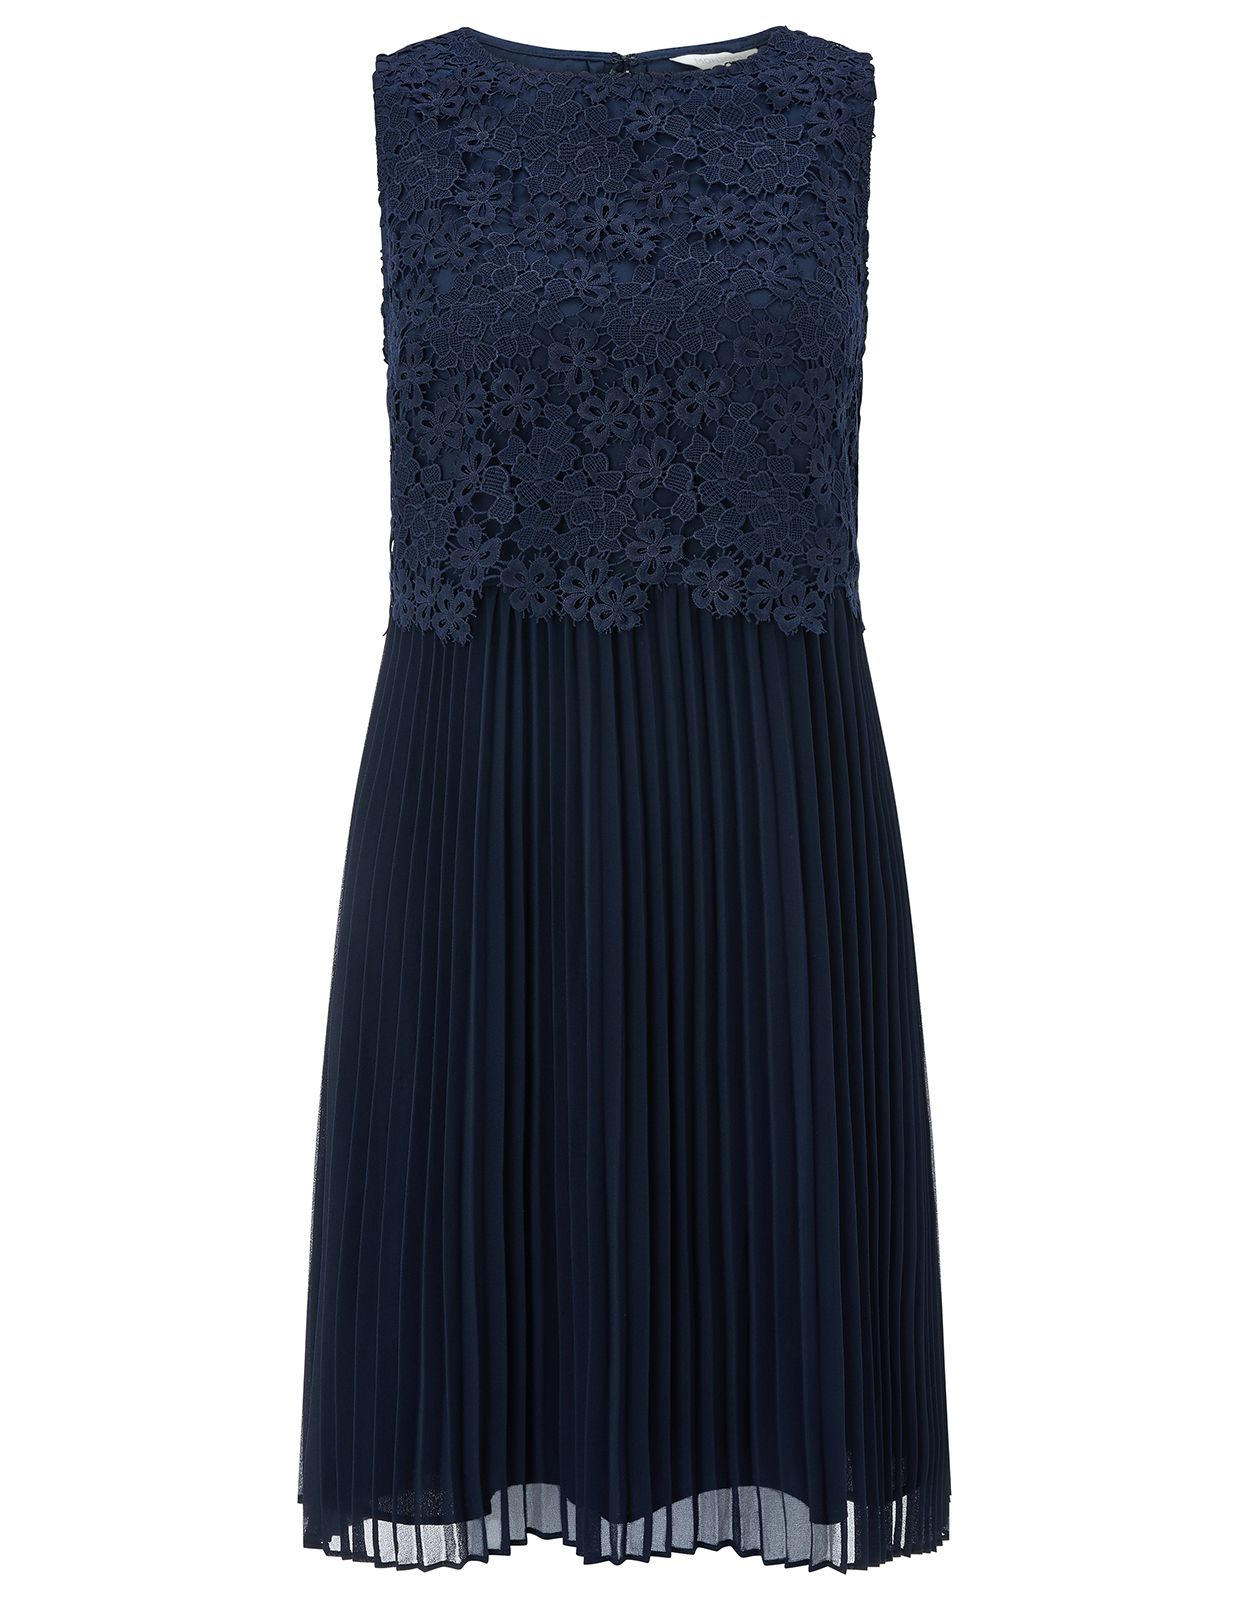 Monsoon Piper Pleat Lace Dress, Blue